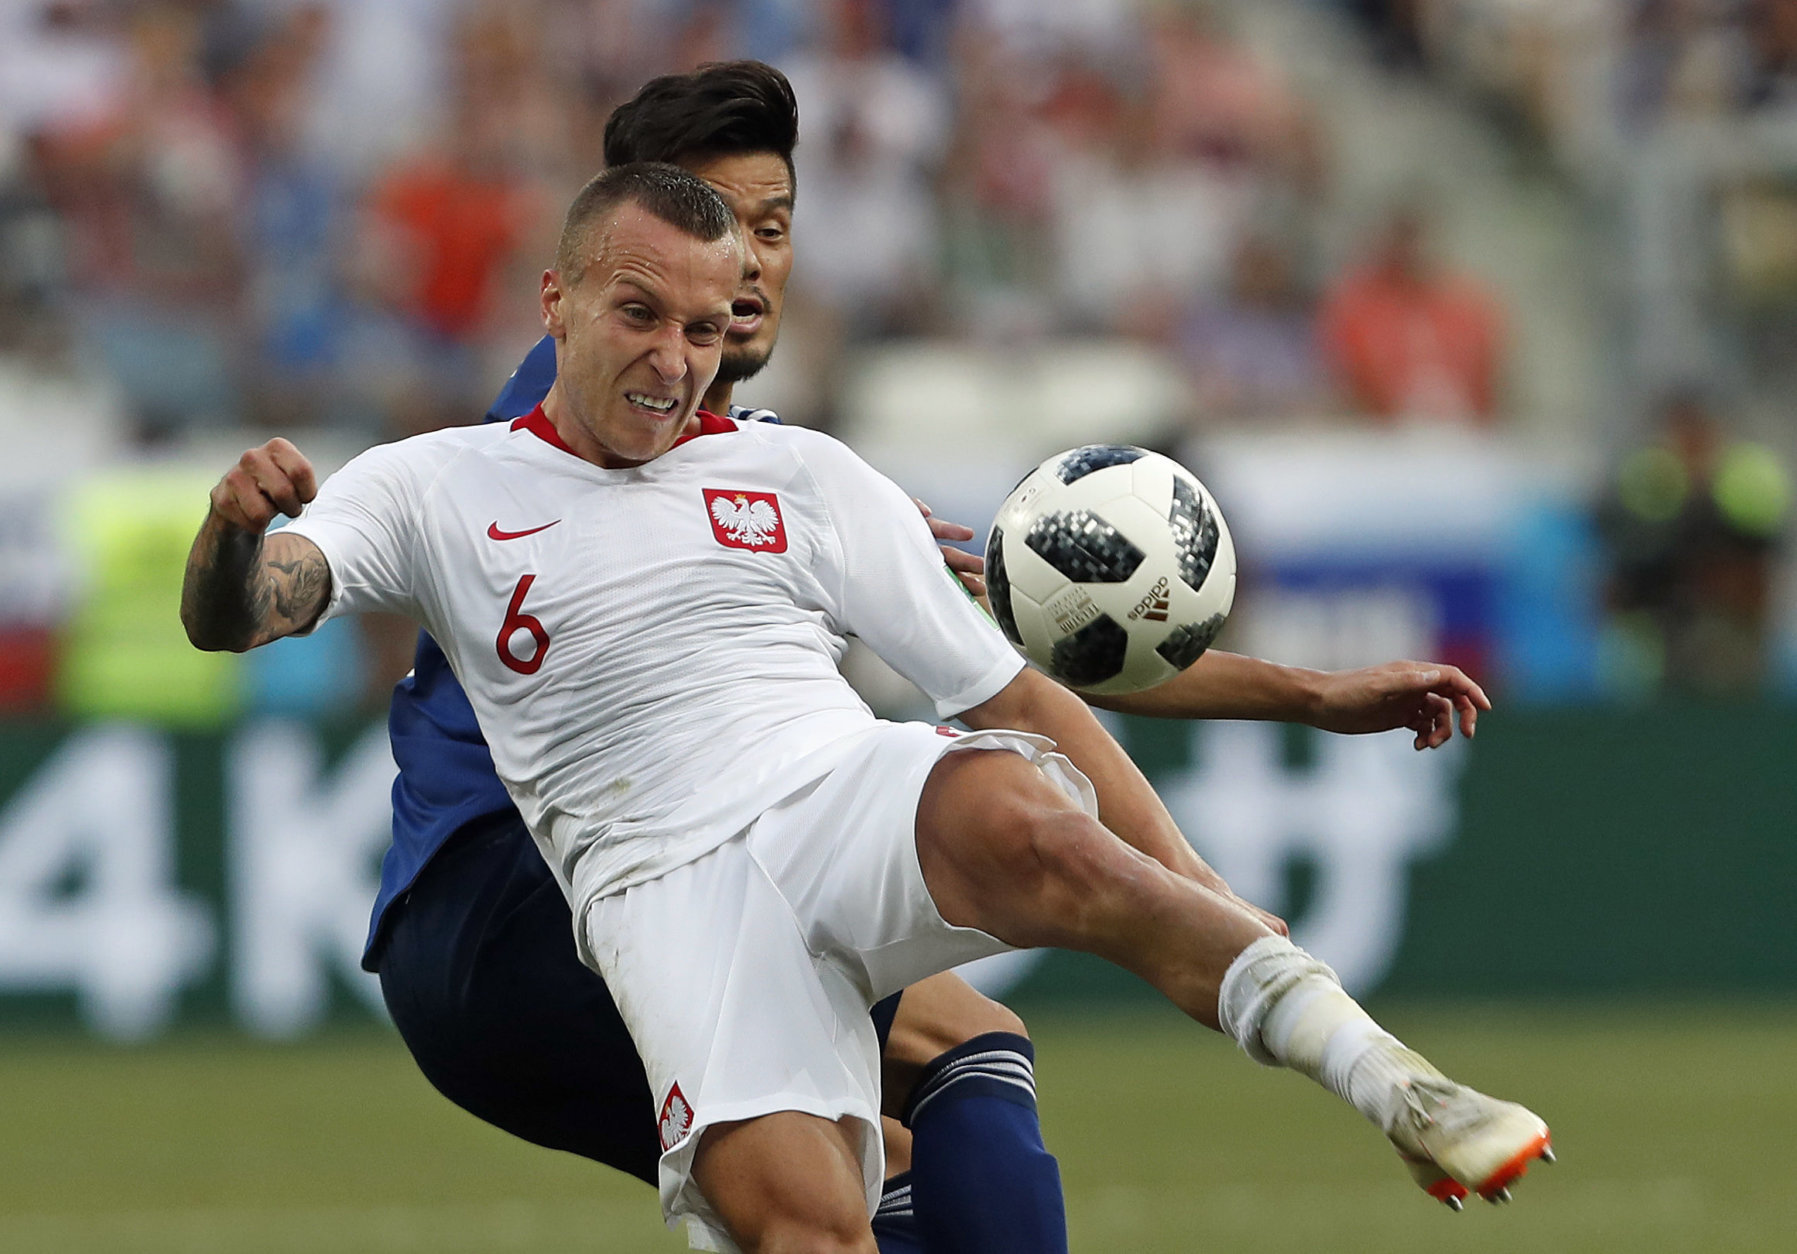 Poland's Jacek Goralski clears the ball during the group H match between Japan and Poland at the 2018 soccer World Cup at the Volgograd Arena in Volgograd, Russia, Thursday, June 28, 2018. (AP Photo/Darko Vojinovic)